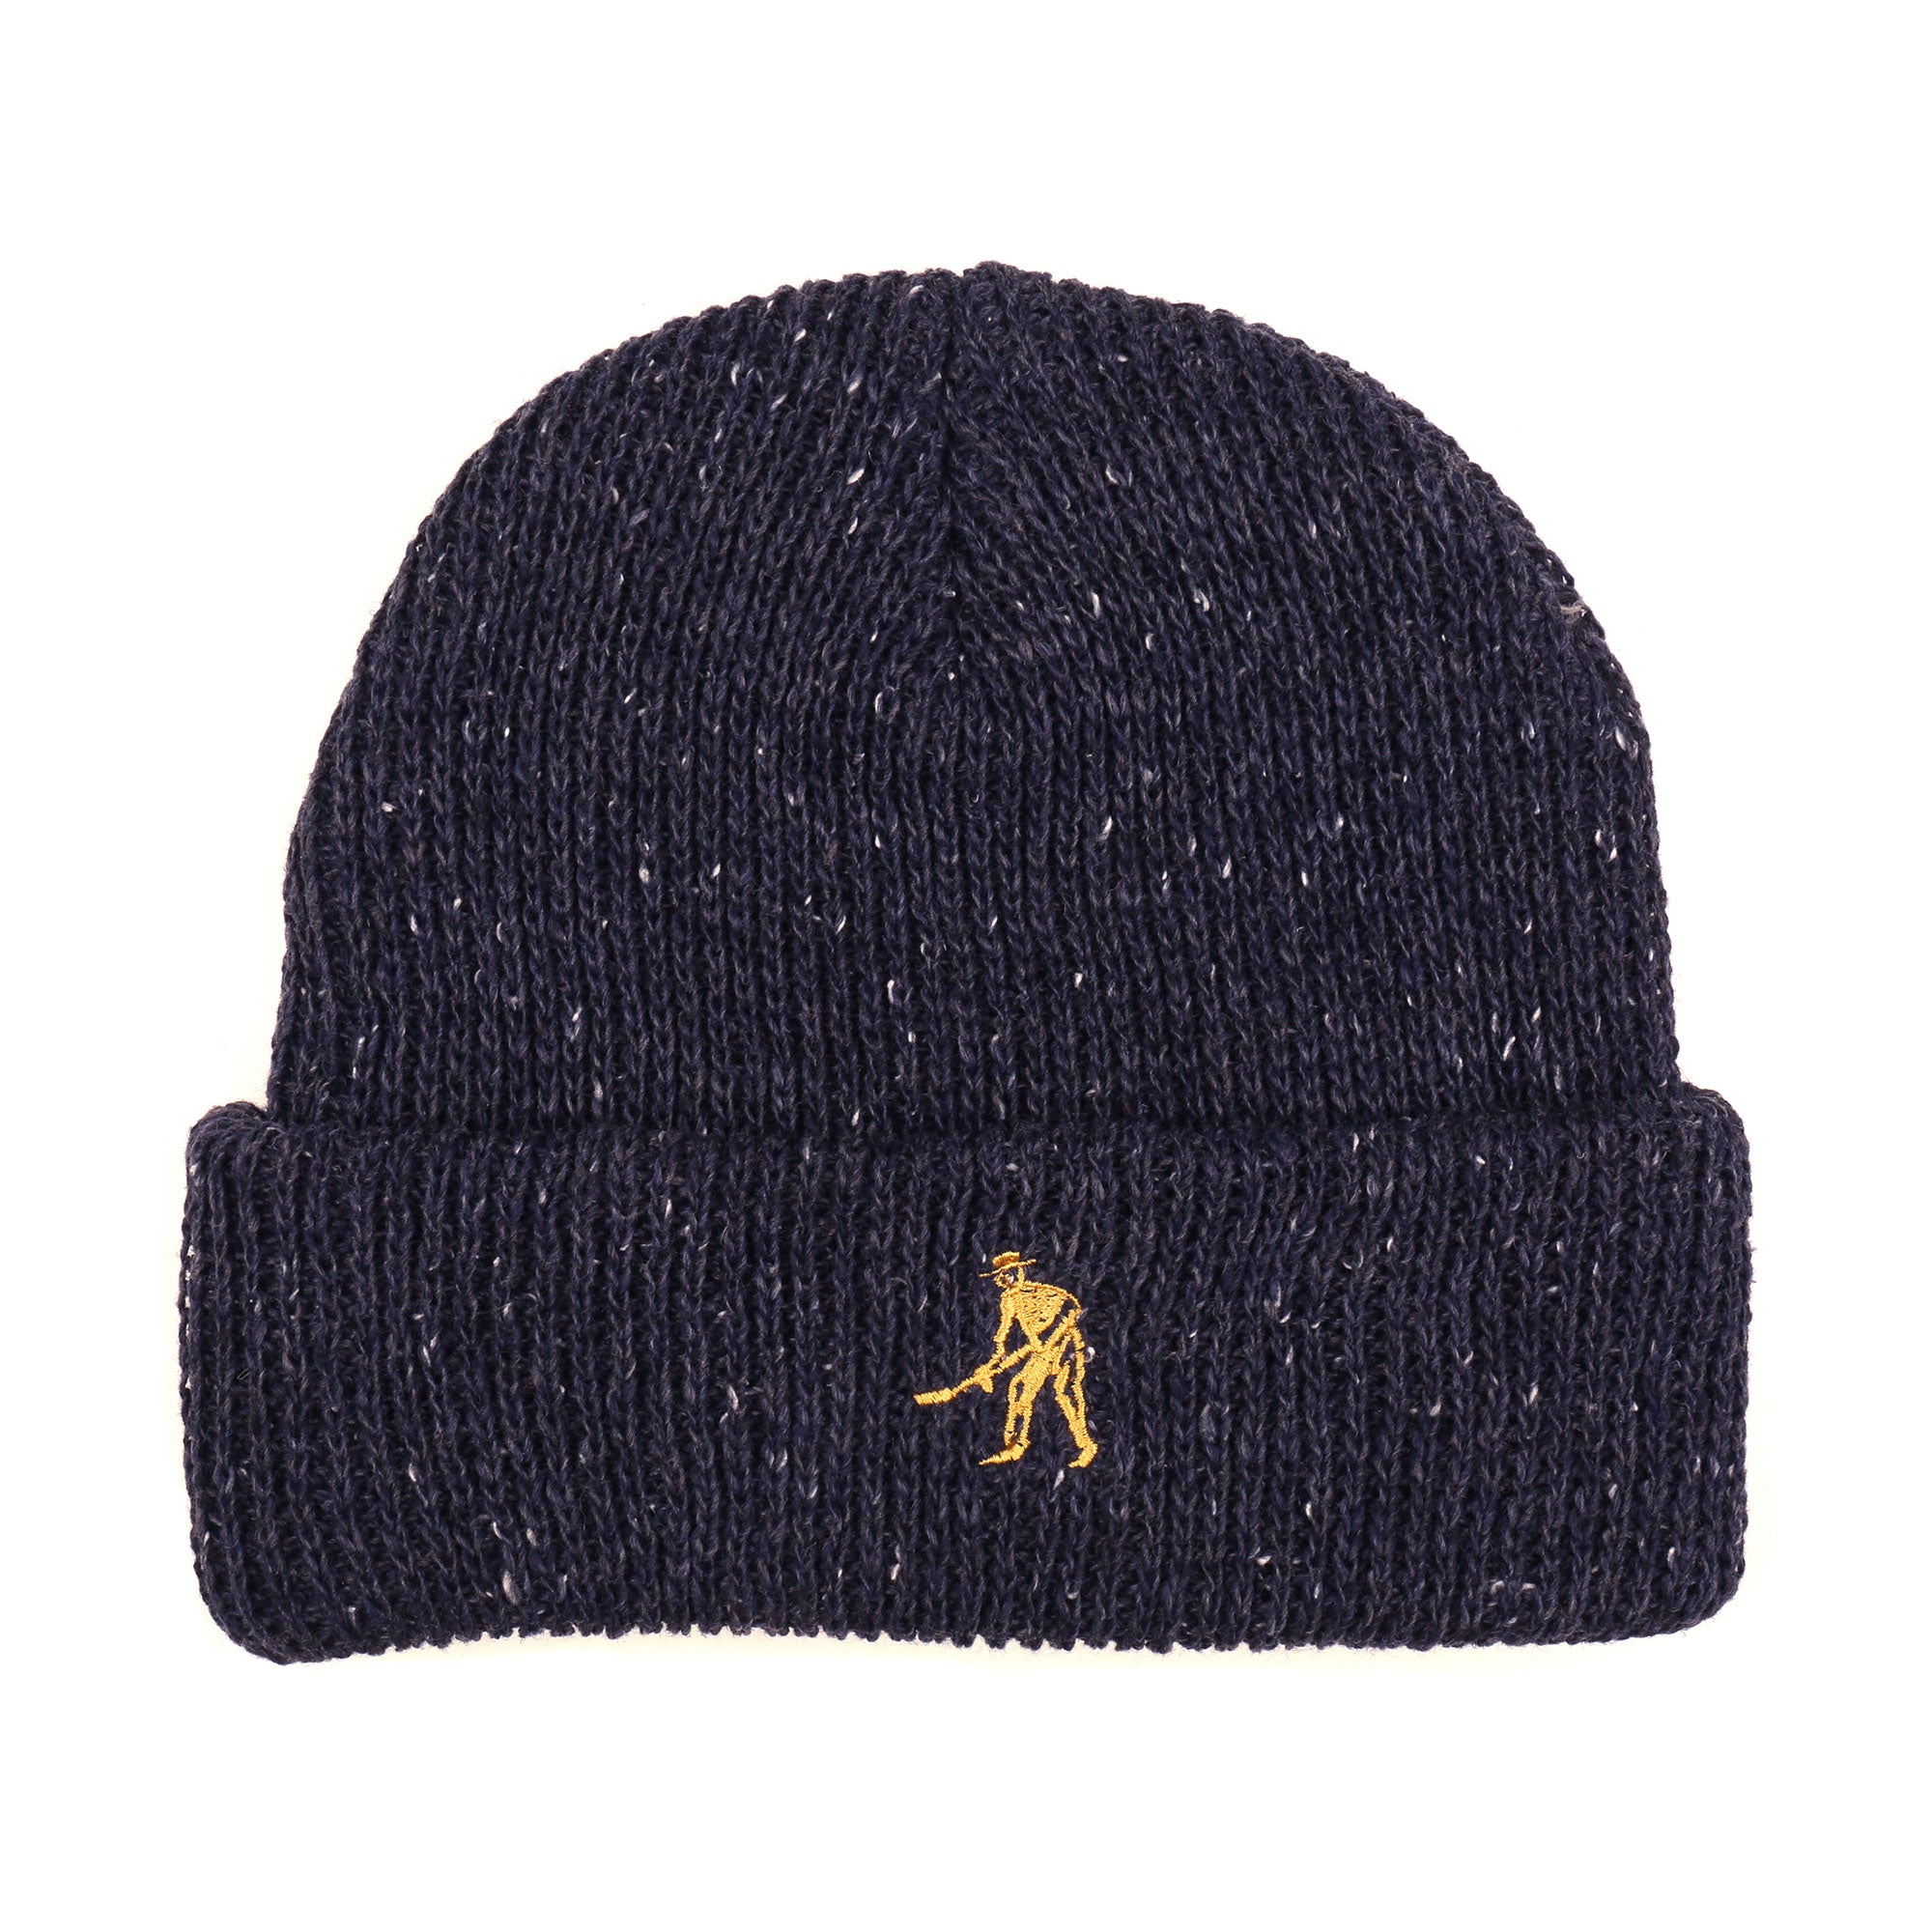 Passport Workers Beanie Product Photo #1